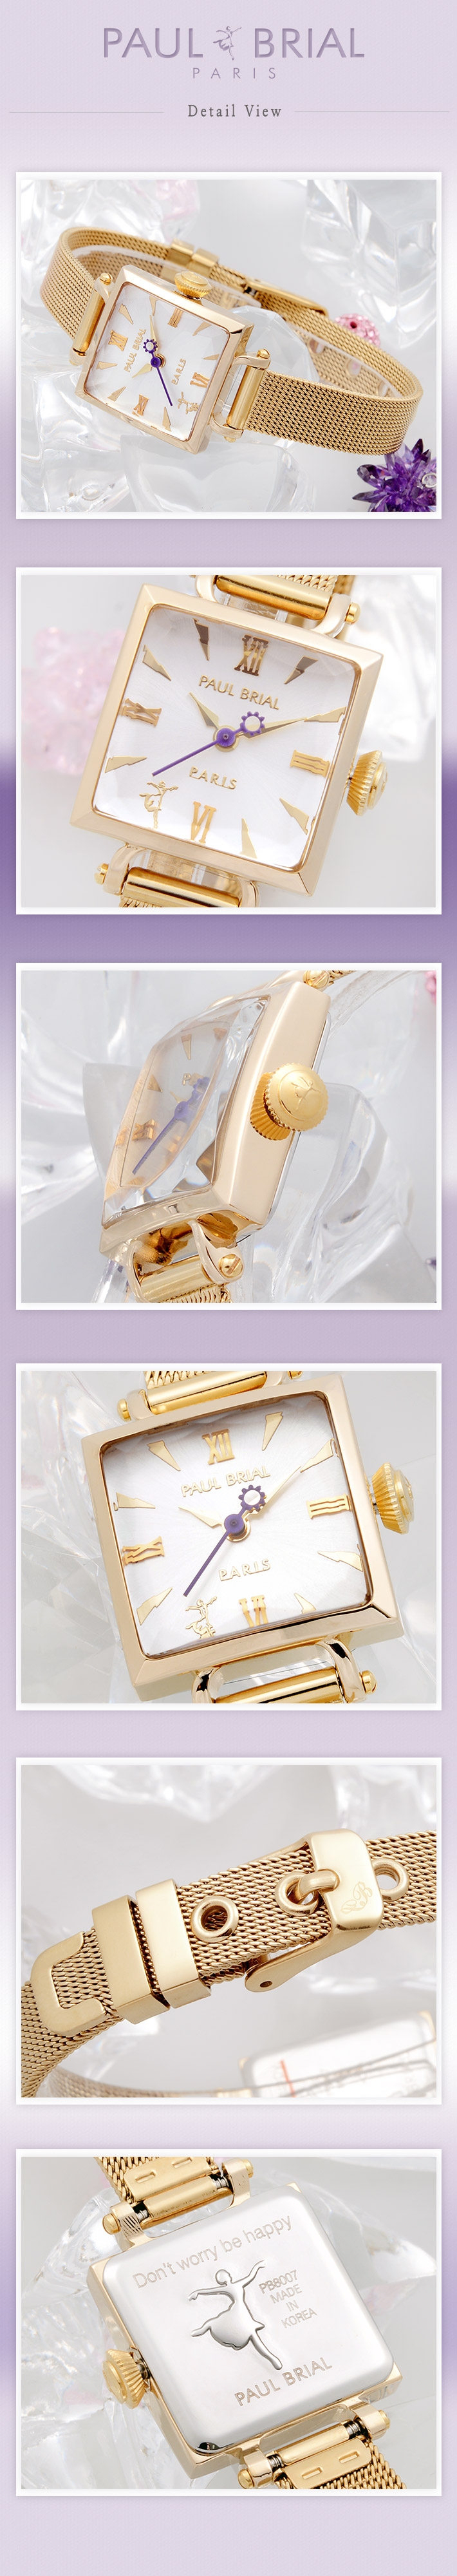 [ PAUL BRIAL ] KOREA MADE HIGH QUALITY LADIES SQUARE GOLD MESH BAND WATCH TPB8007GD_mesh TOULOUSE Ⅱ